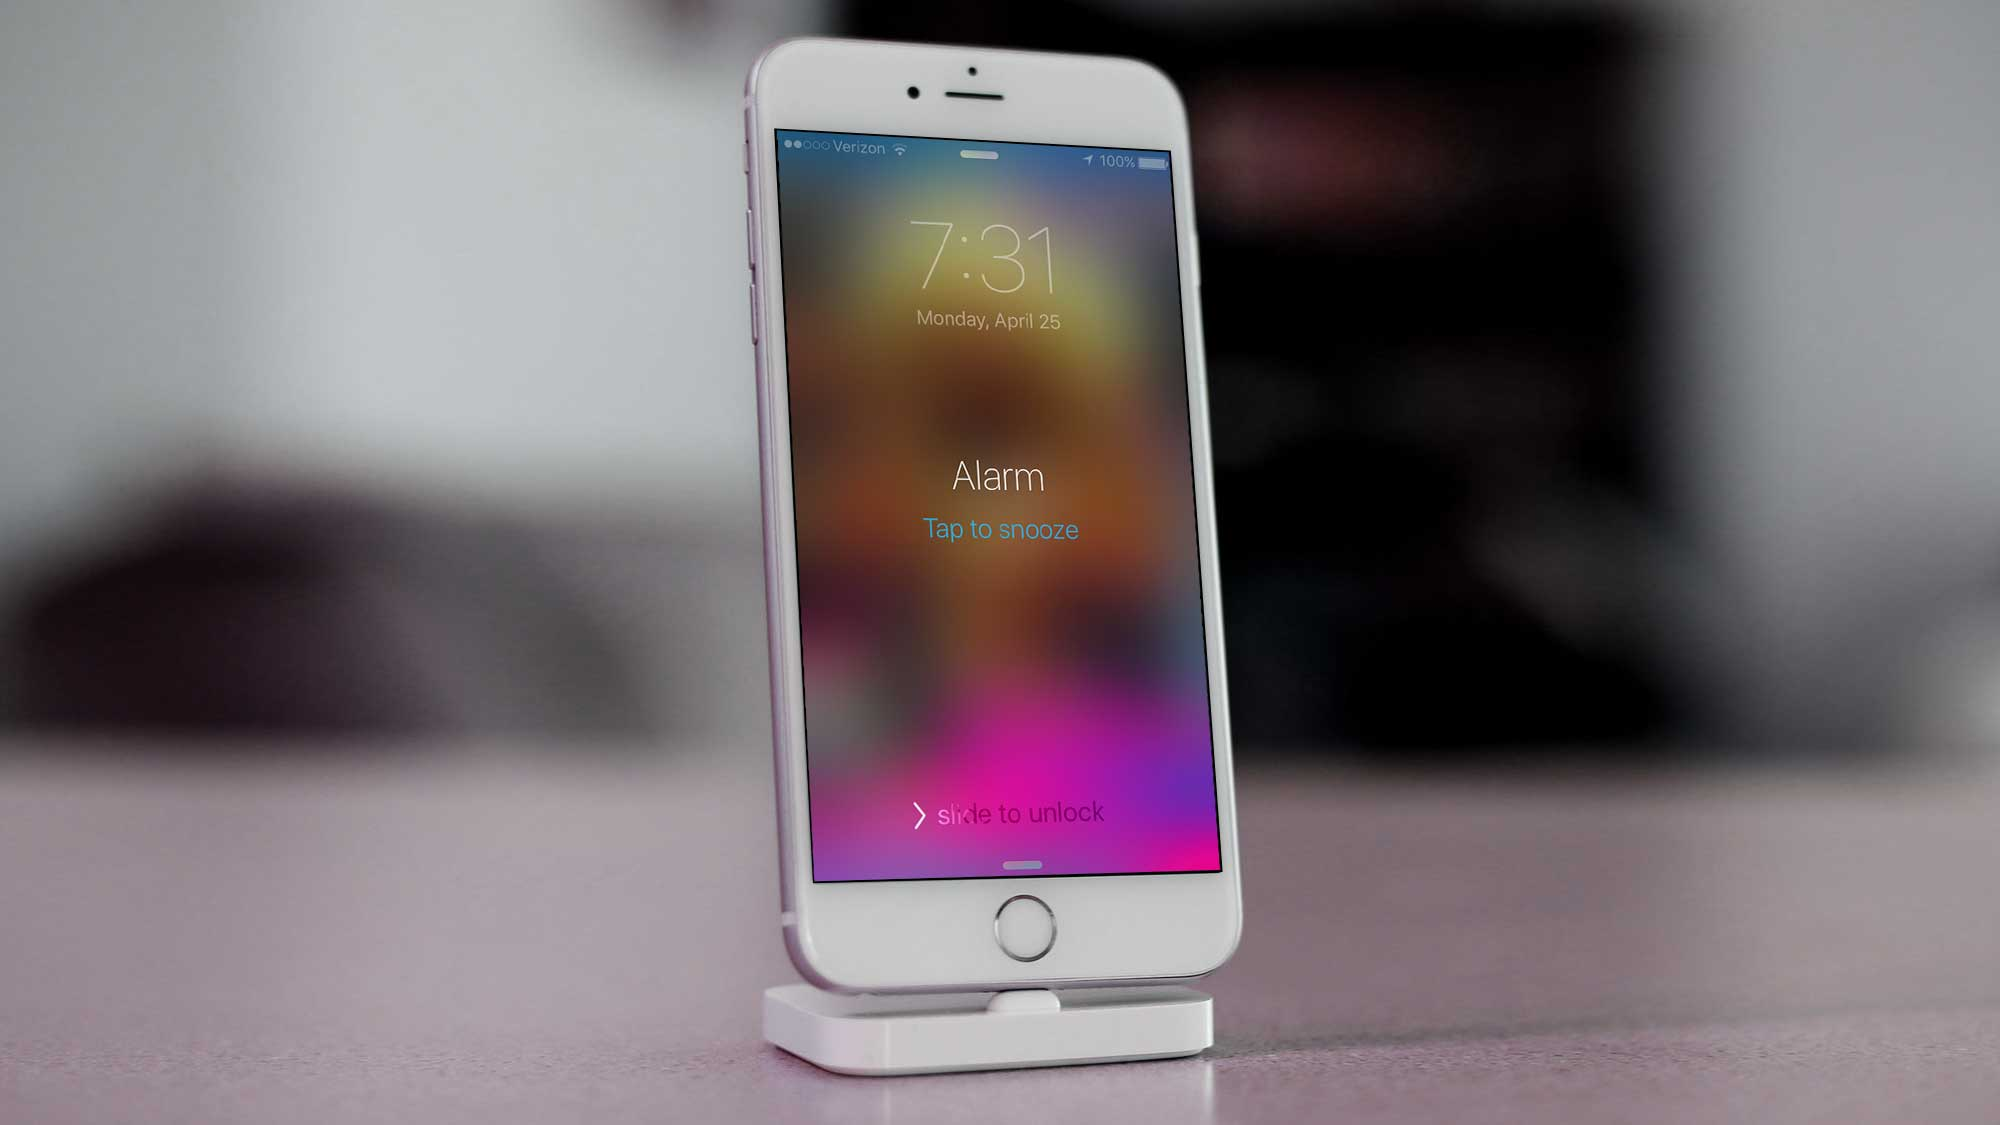 iPhone Alarm - Tap To Snooze